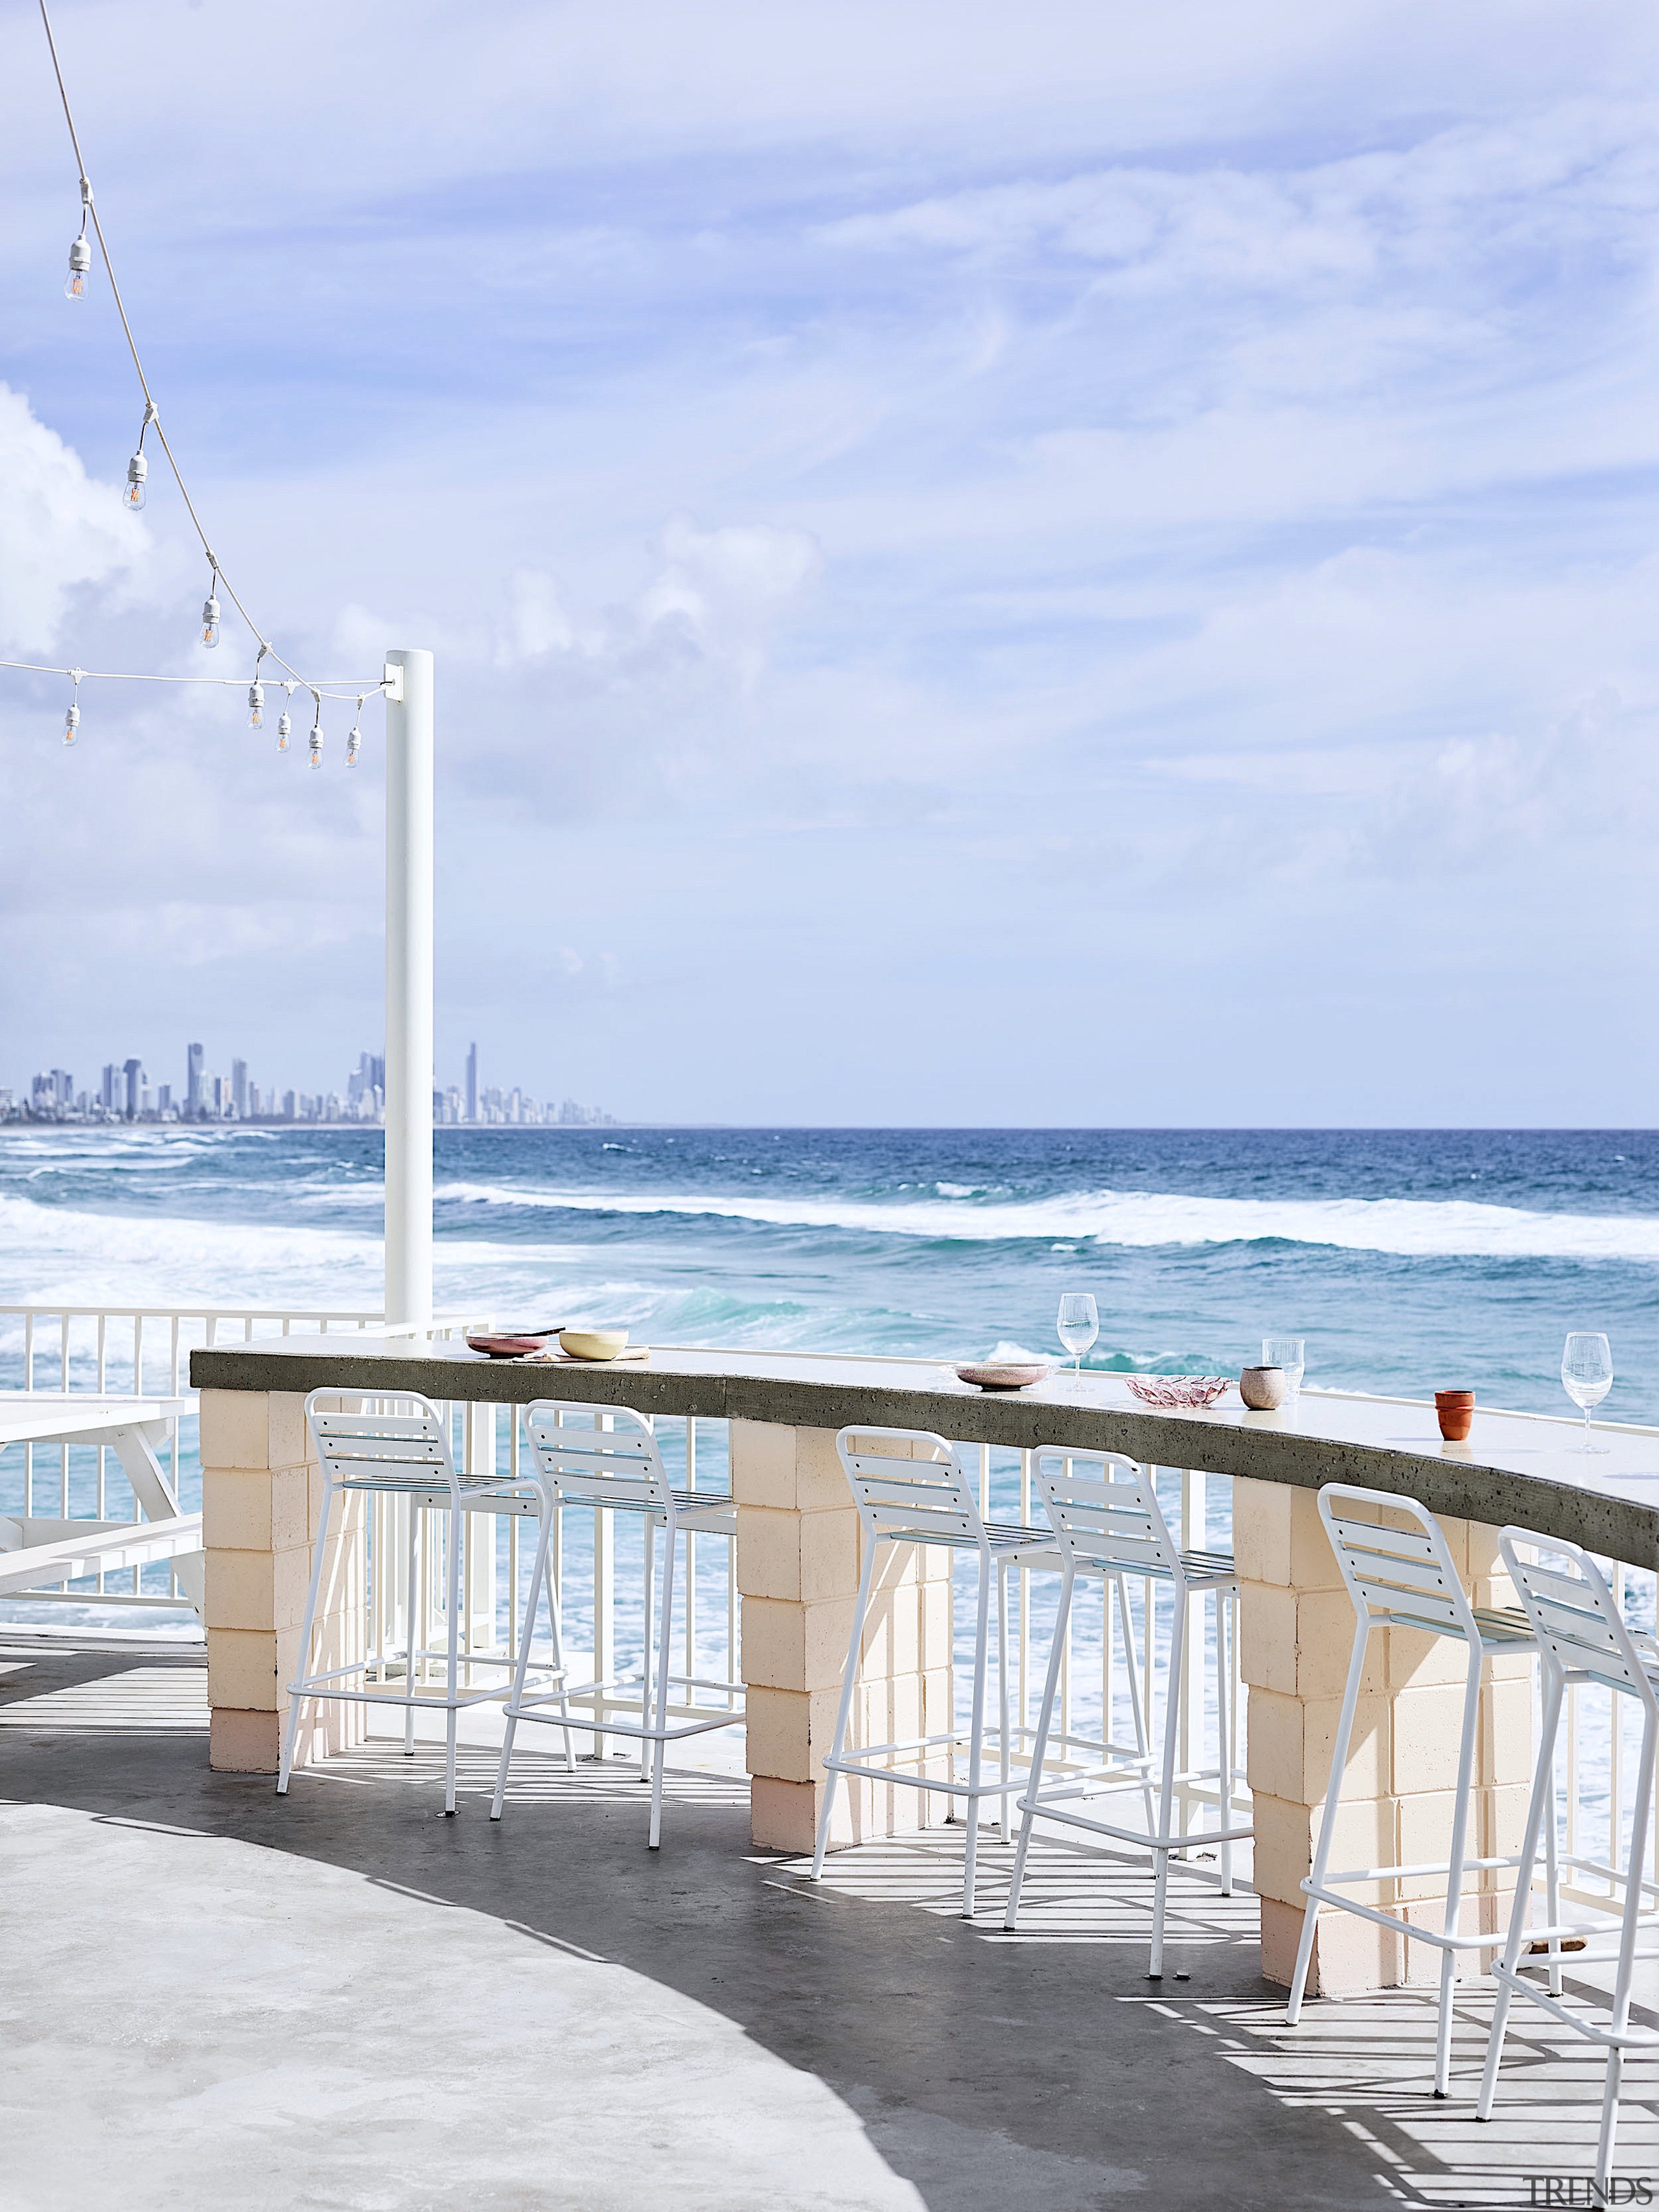 I cover the waterfront – Burleigh Pavilion has